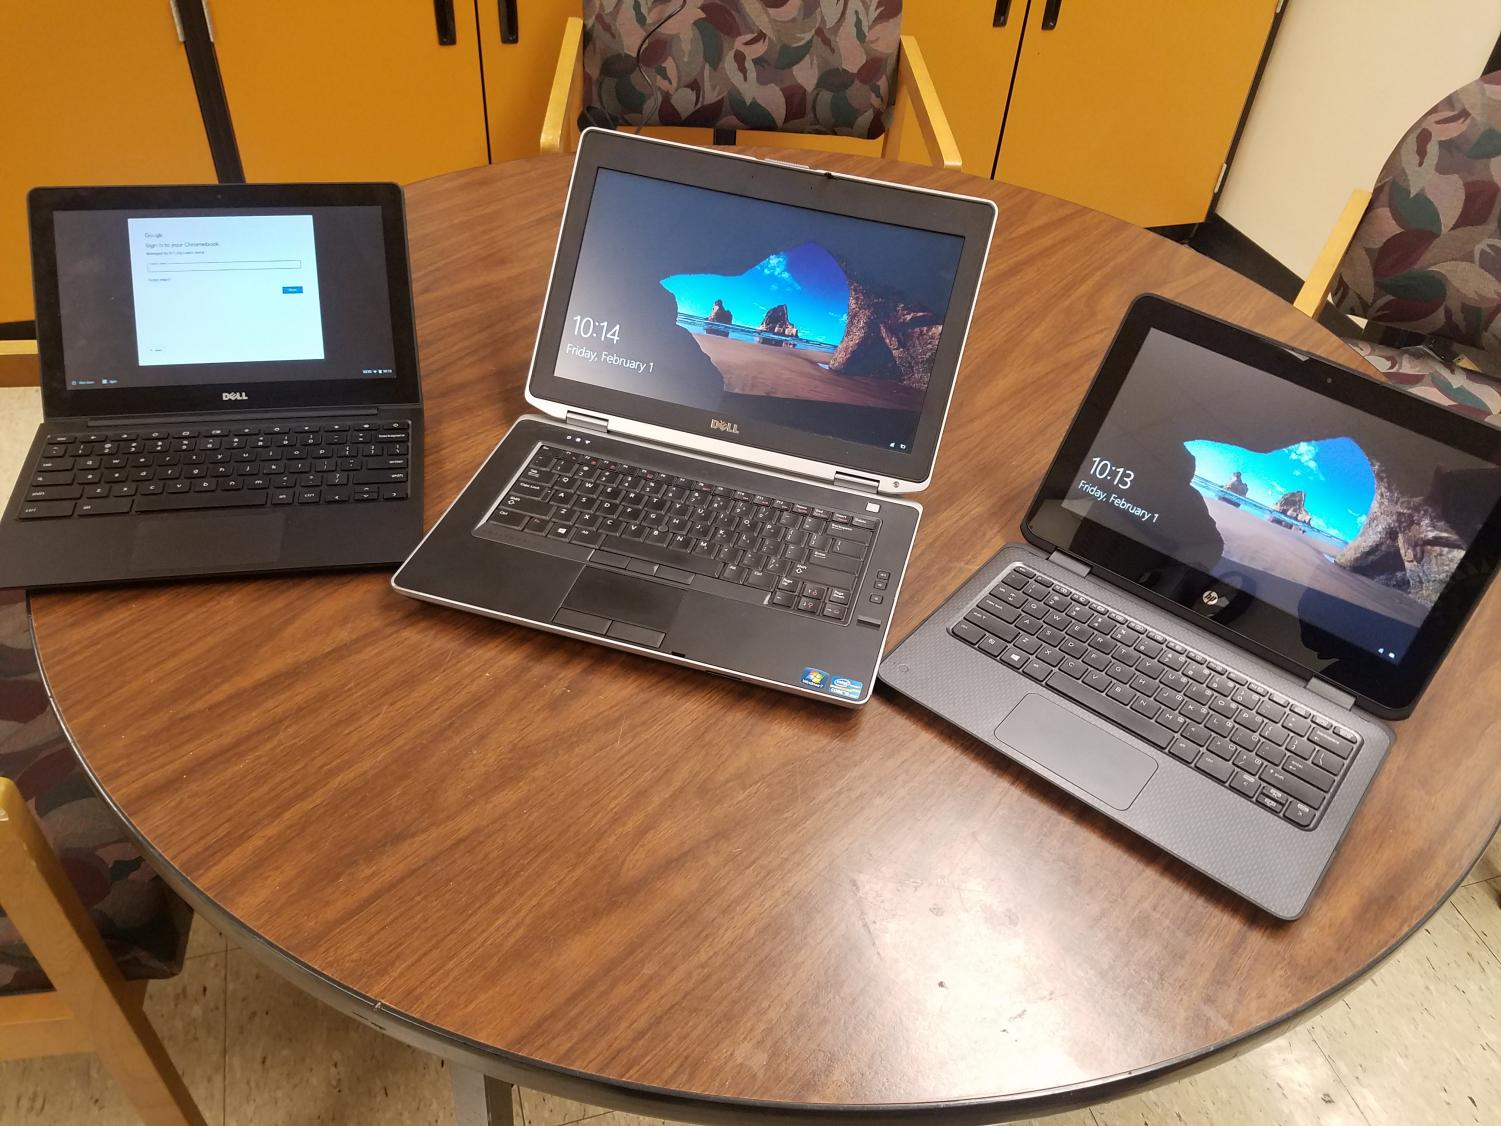 Why three different types of laptops? This questions, and others, are answered in the article.